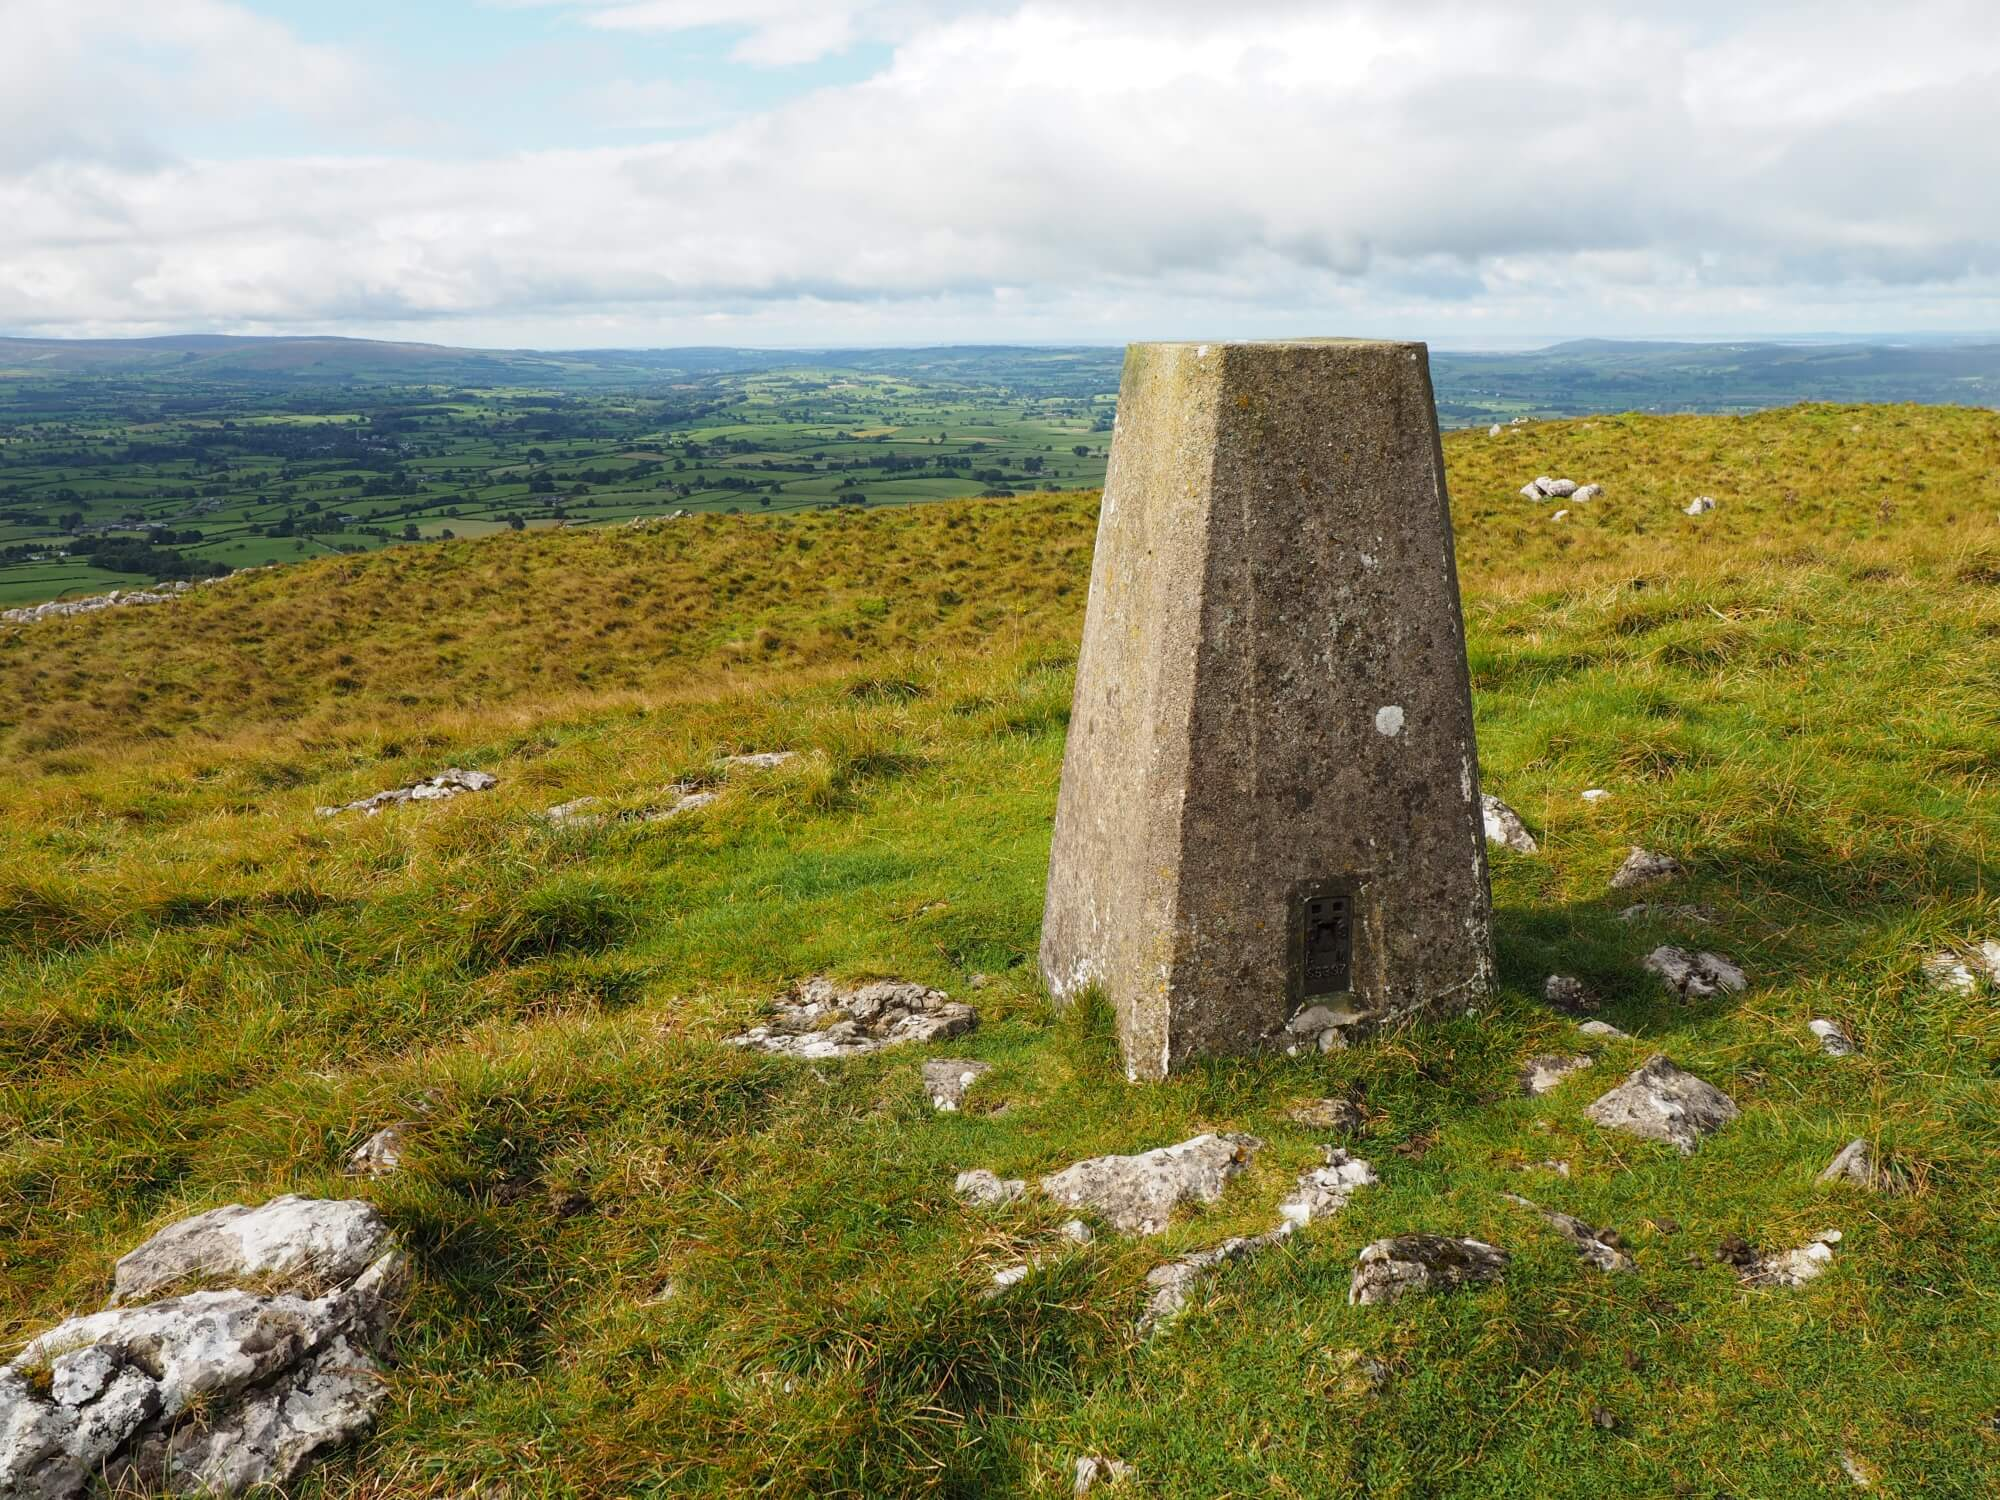 The Tow Scar Trig Point